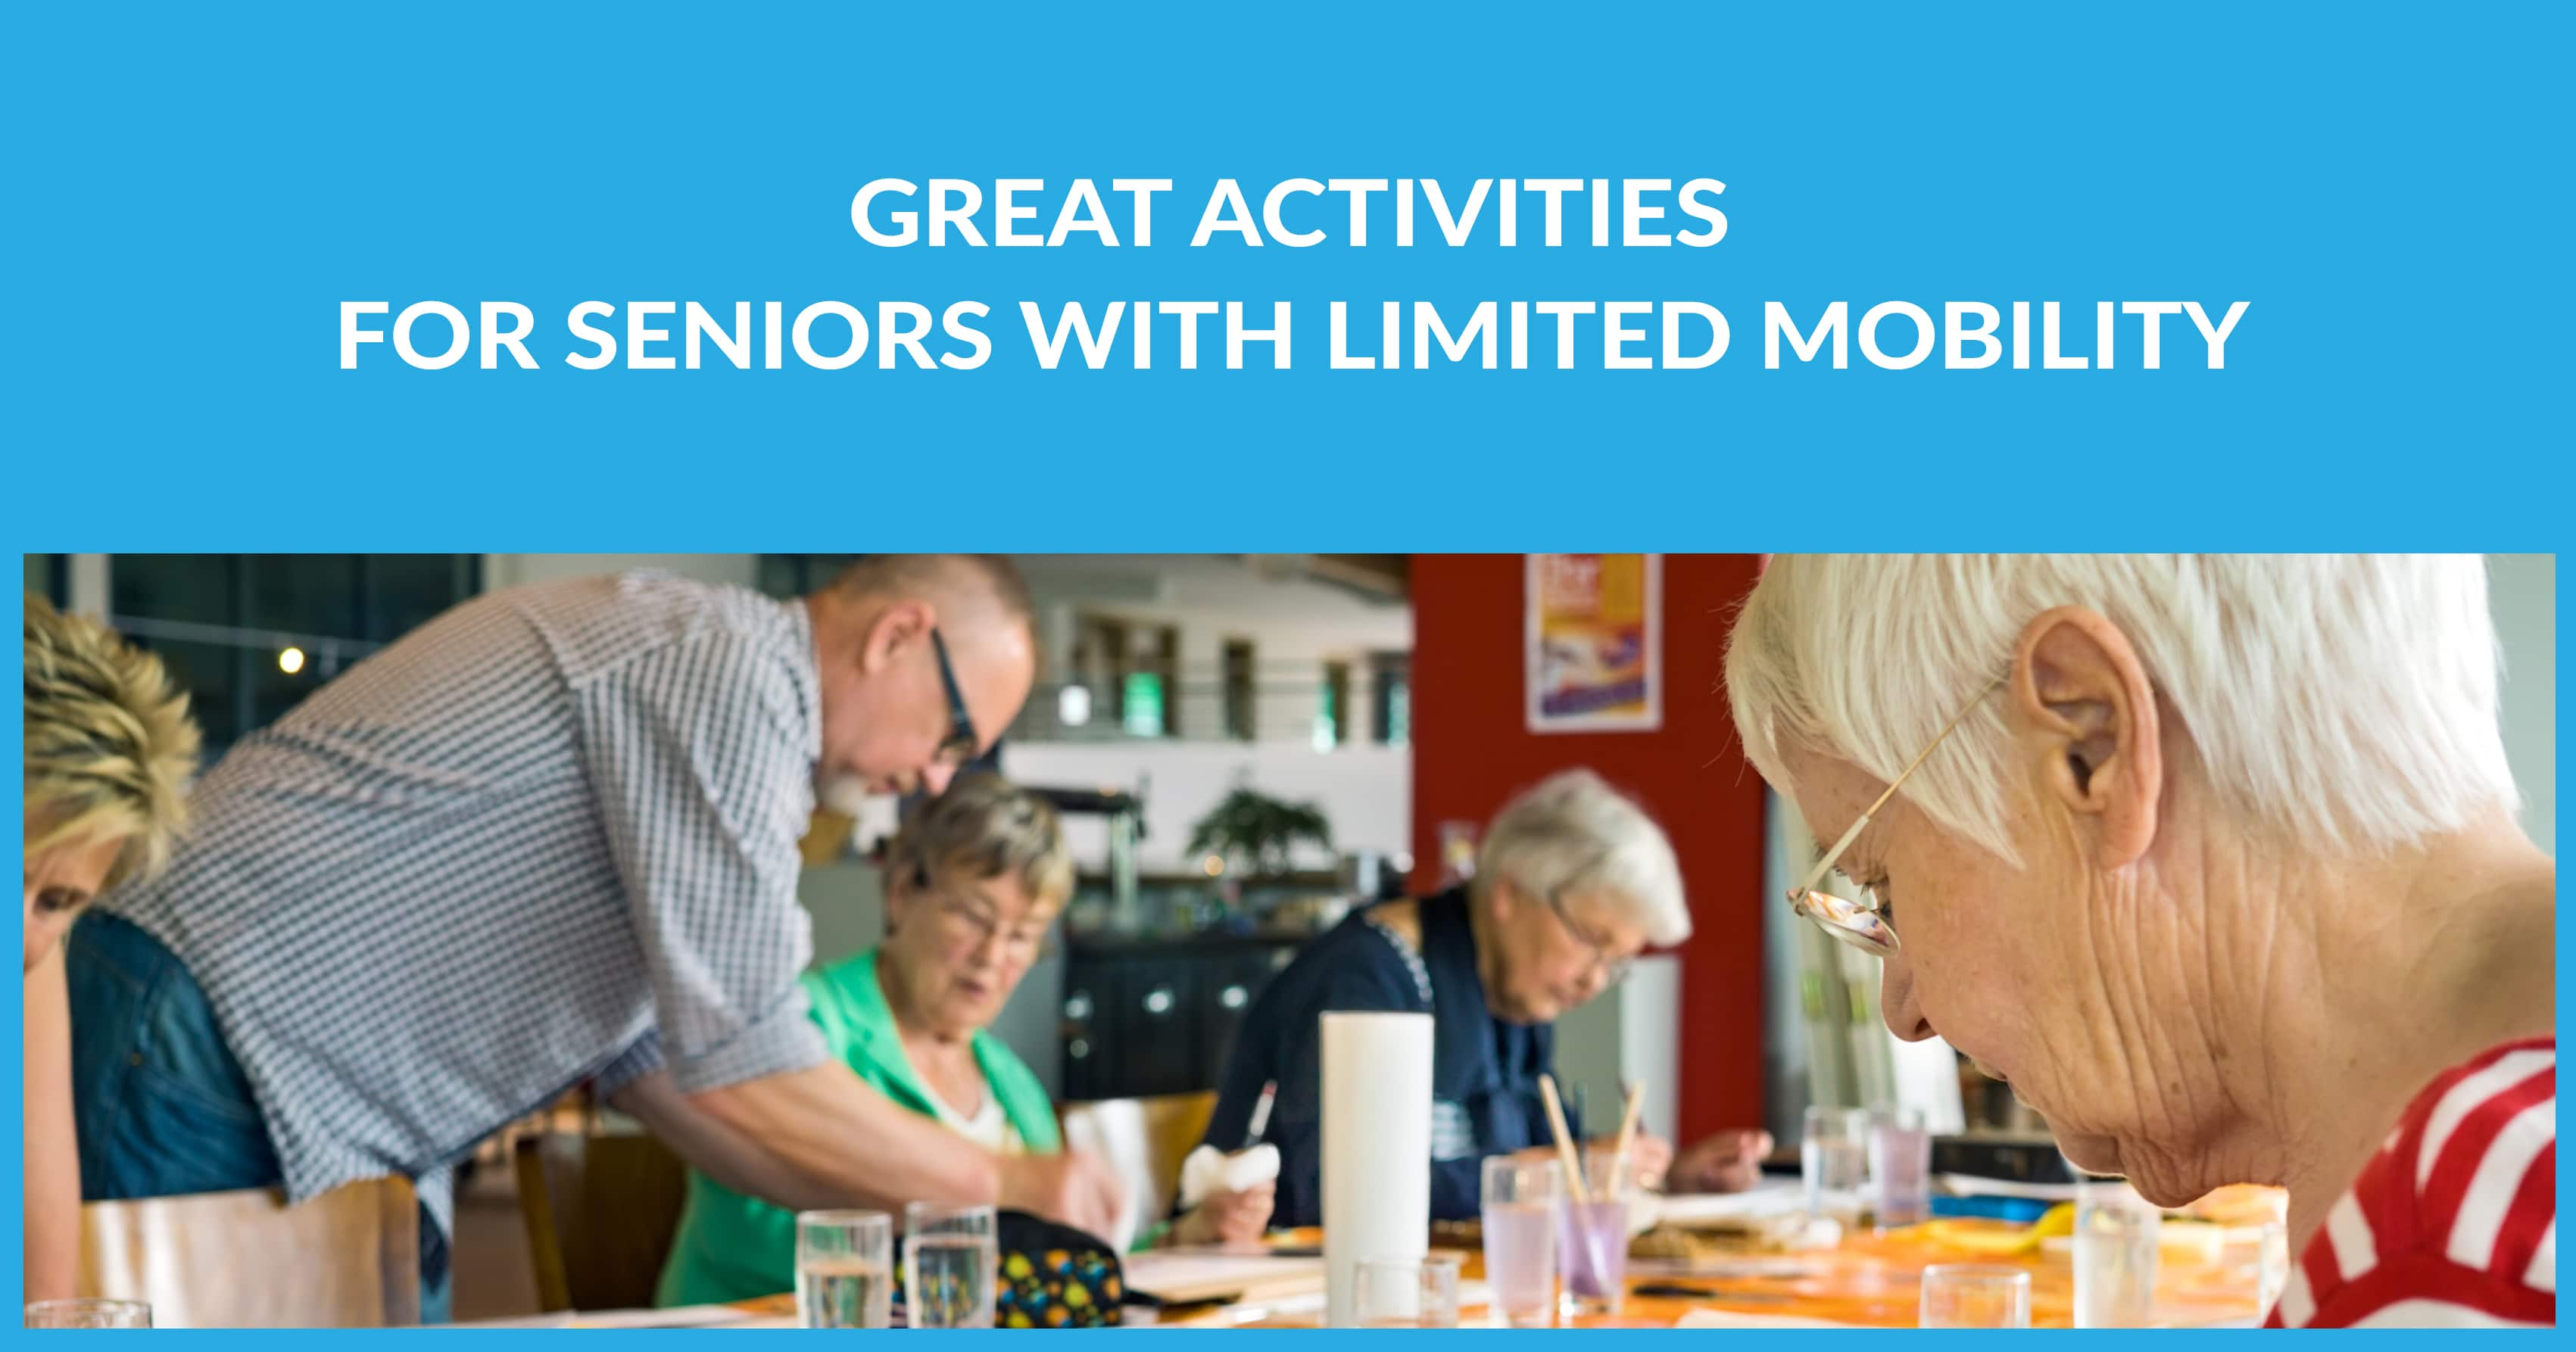 Great Activities for Seniors with Limited Mobility